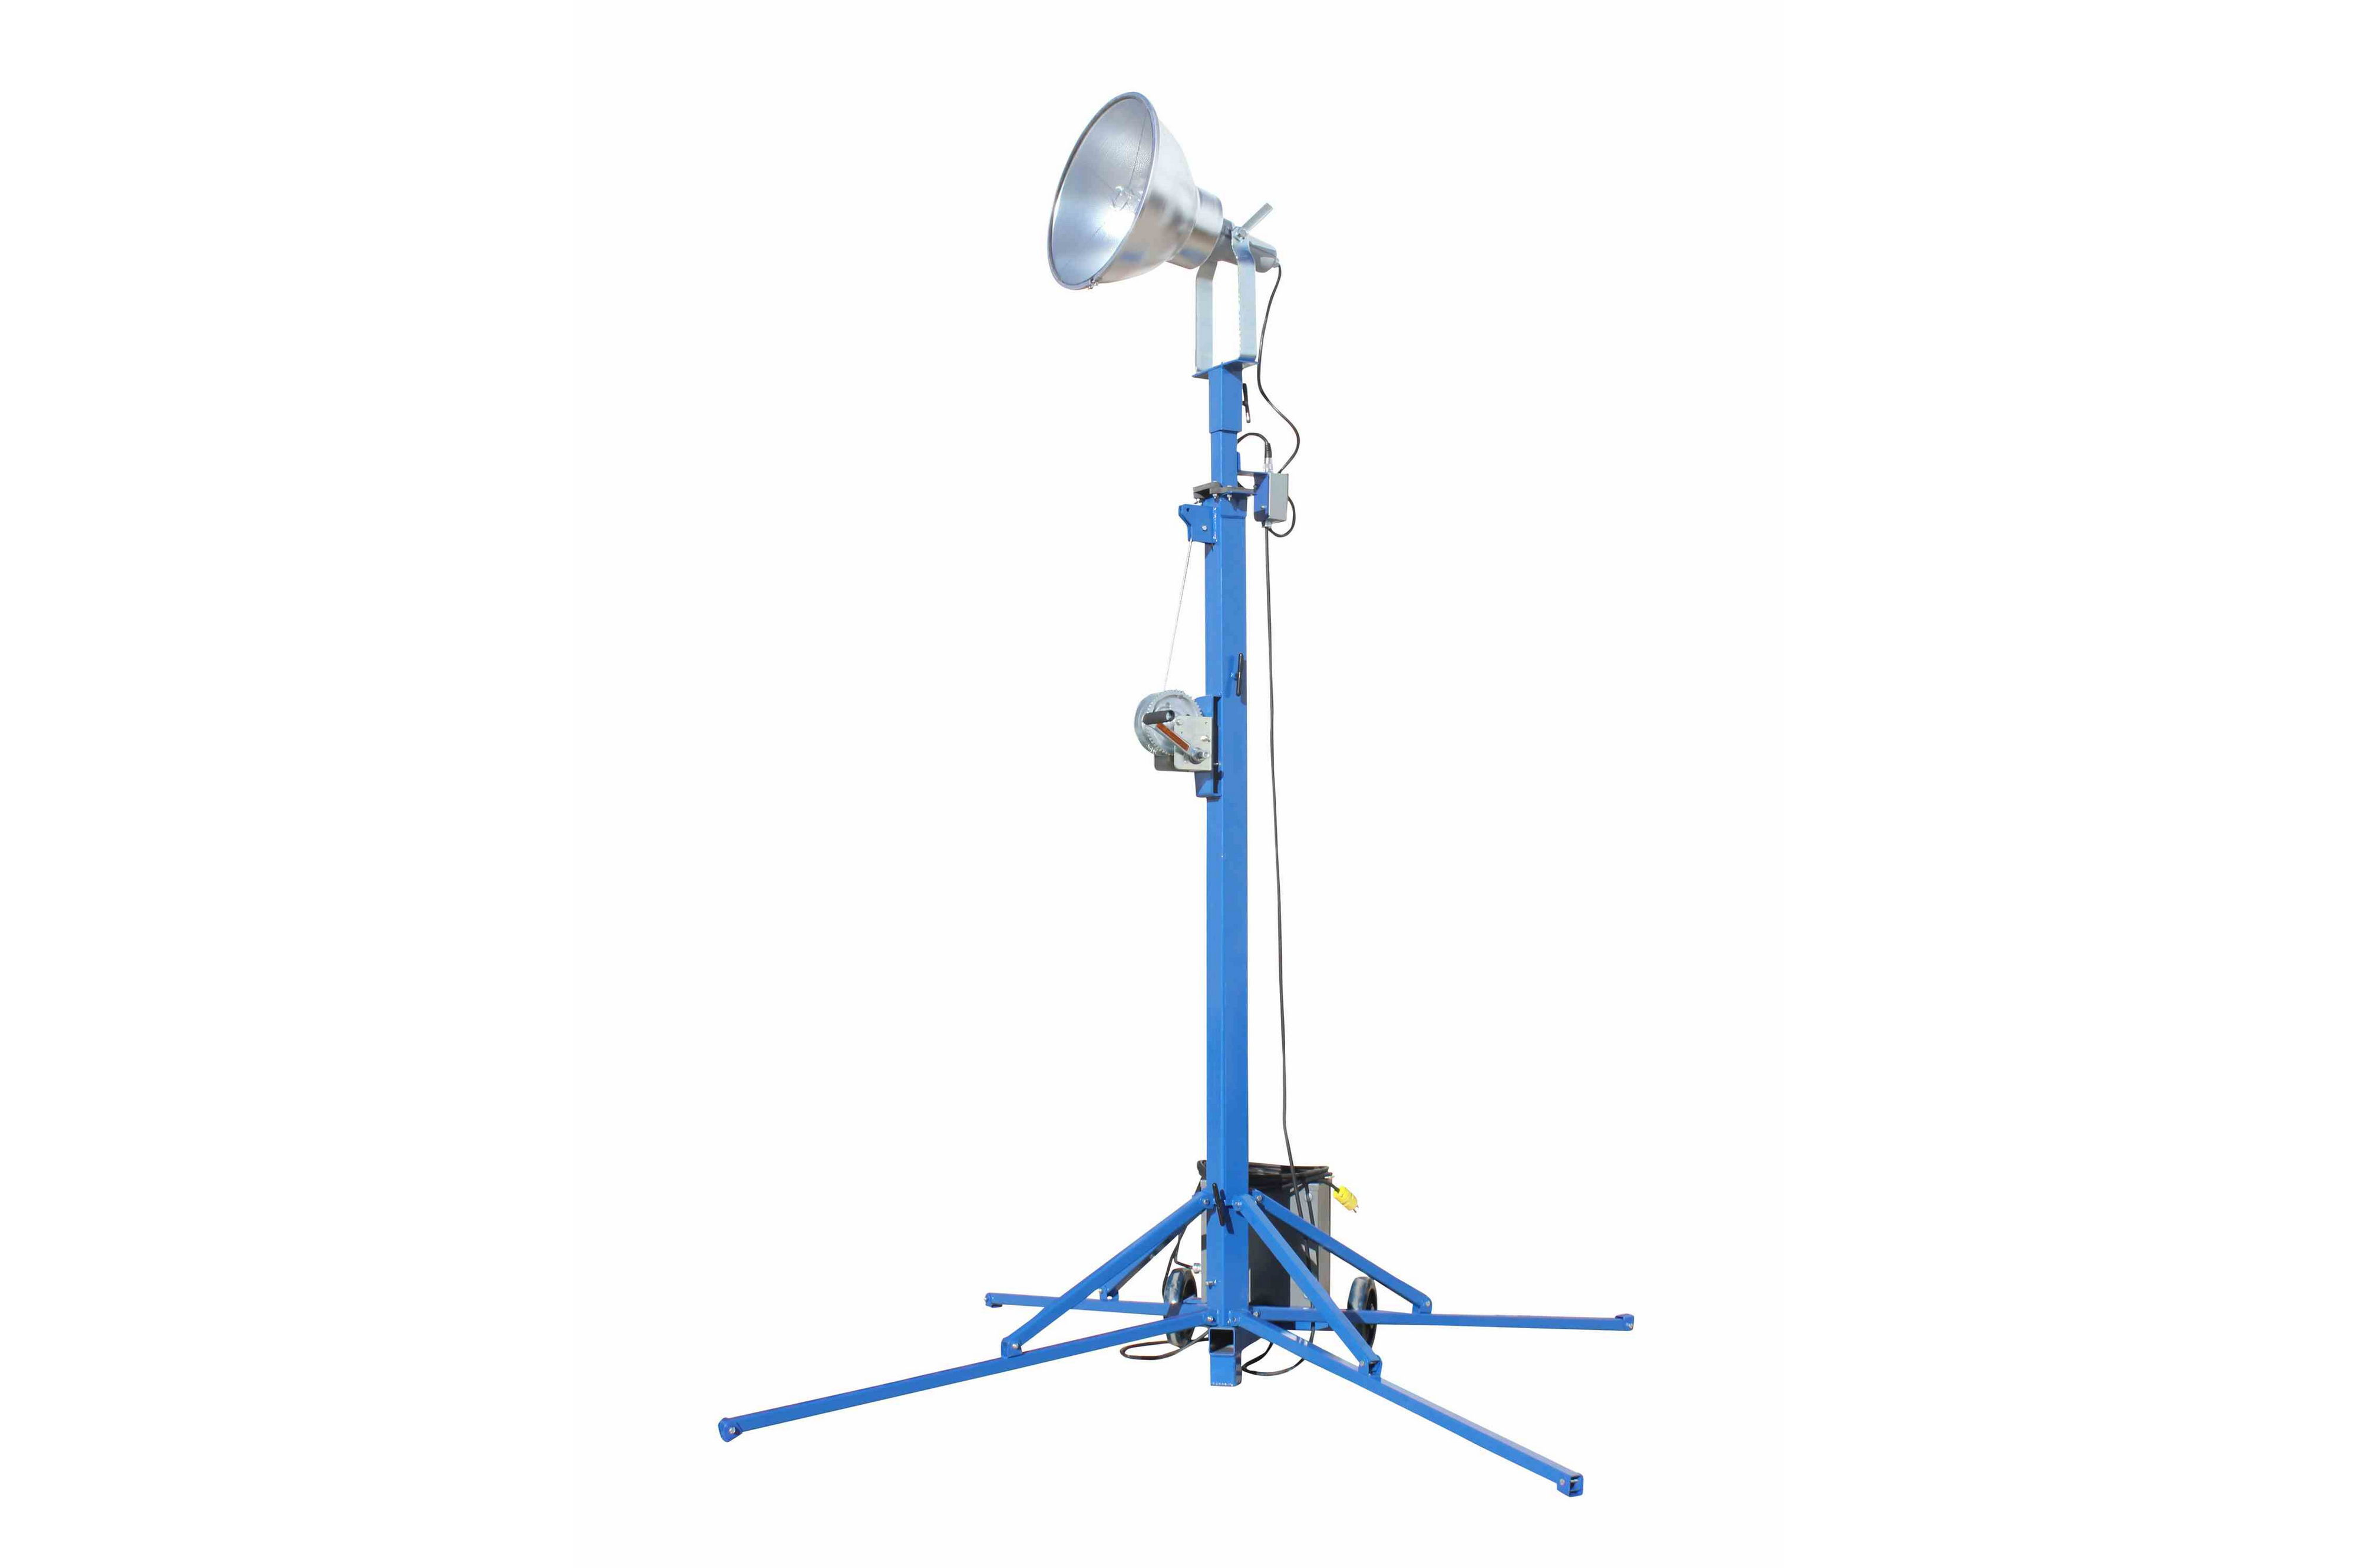 Portable Metal Halide Lights : Portable light tower watt metal halide covers